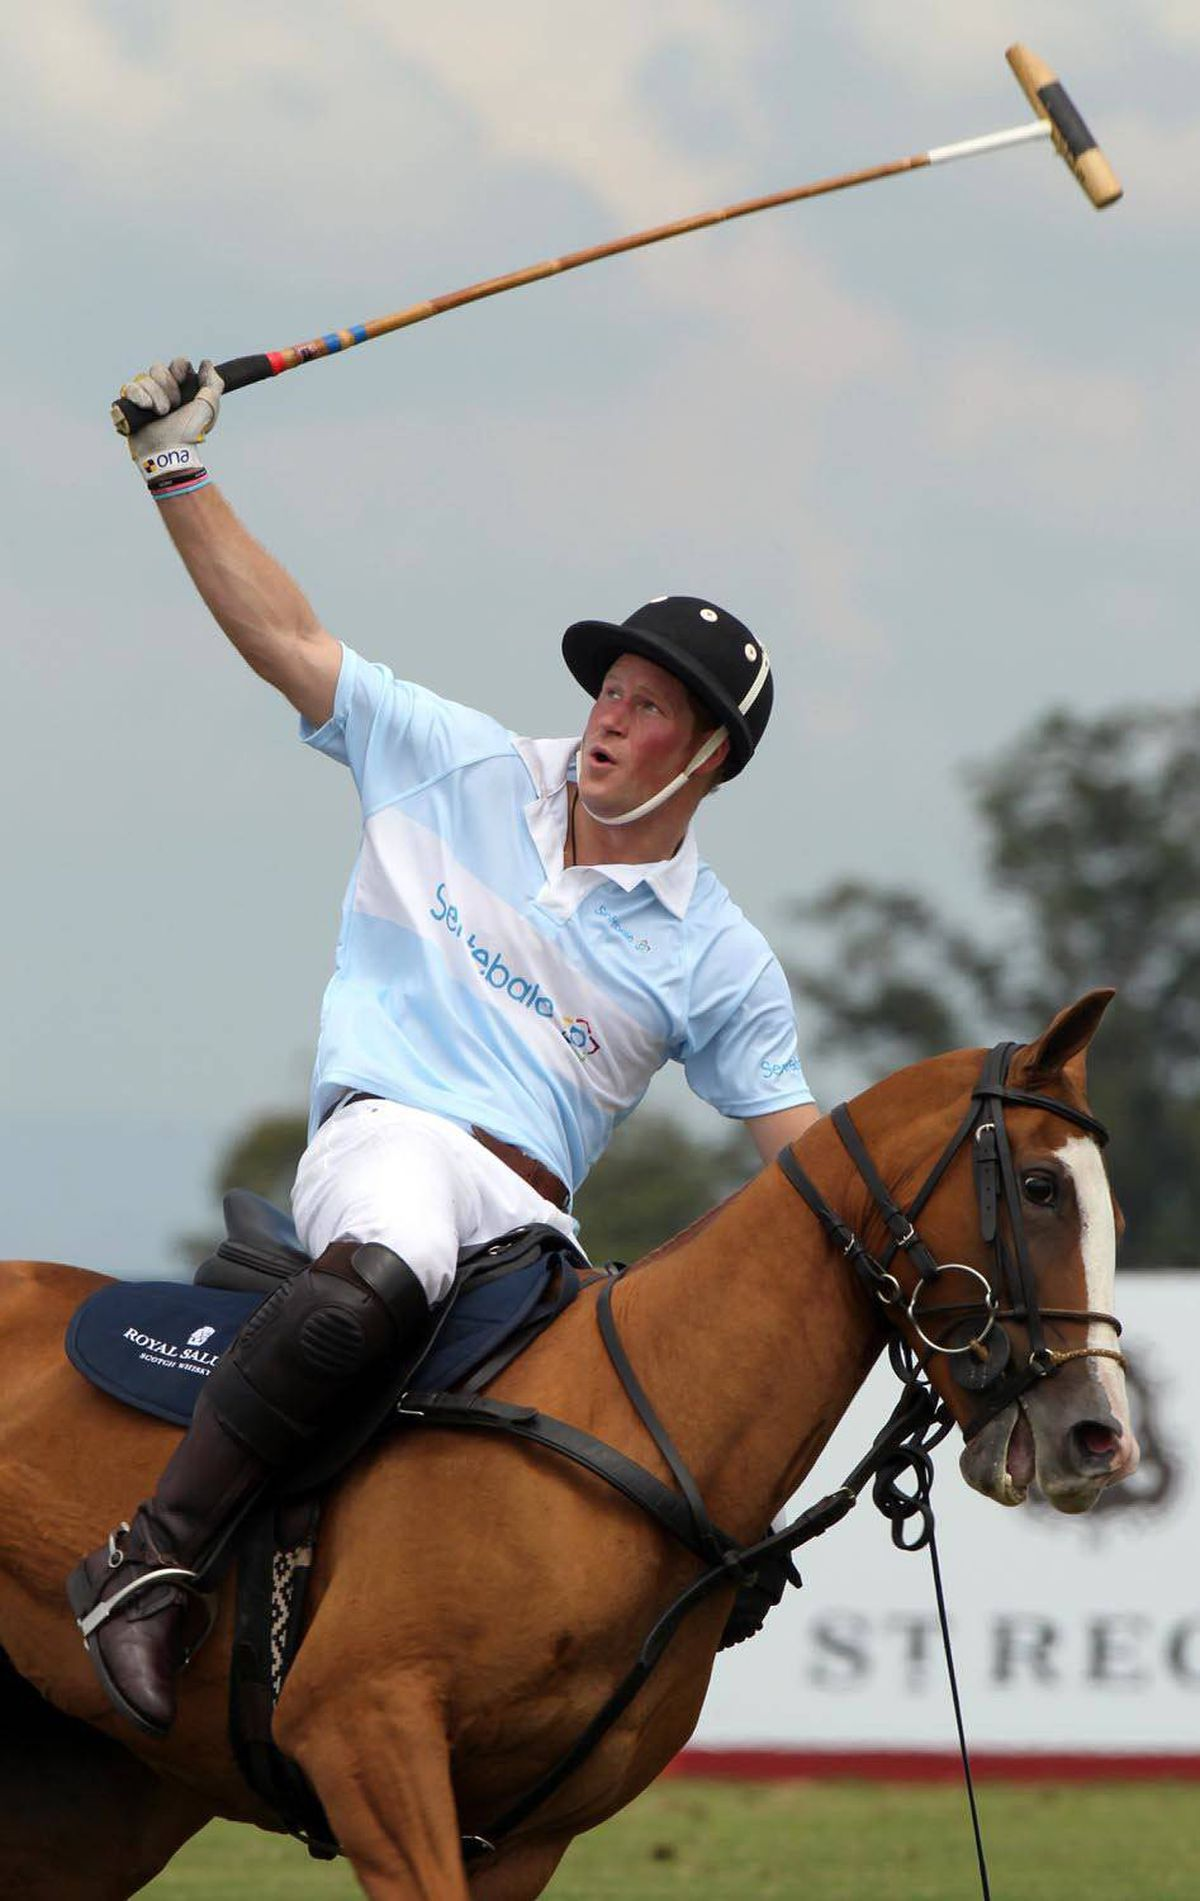 POLO PLAYER Britain's Prince Harry plays a polo match at a farm in Campinas, Brazil, March 11, 2012.